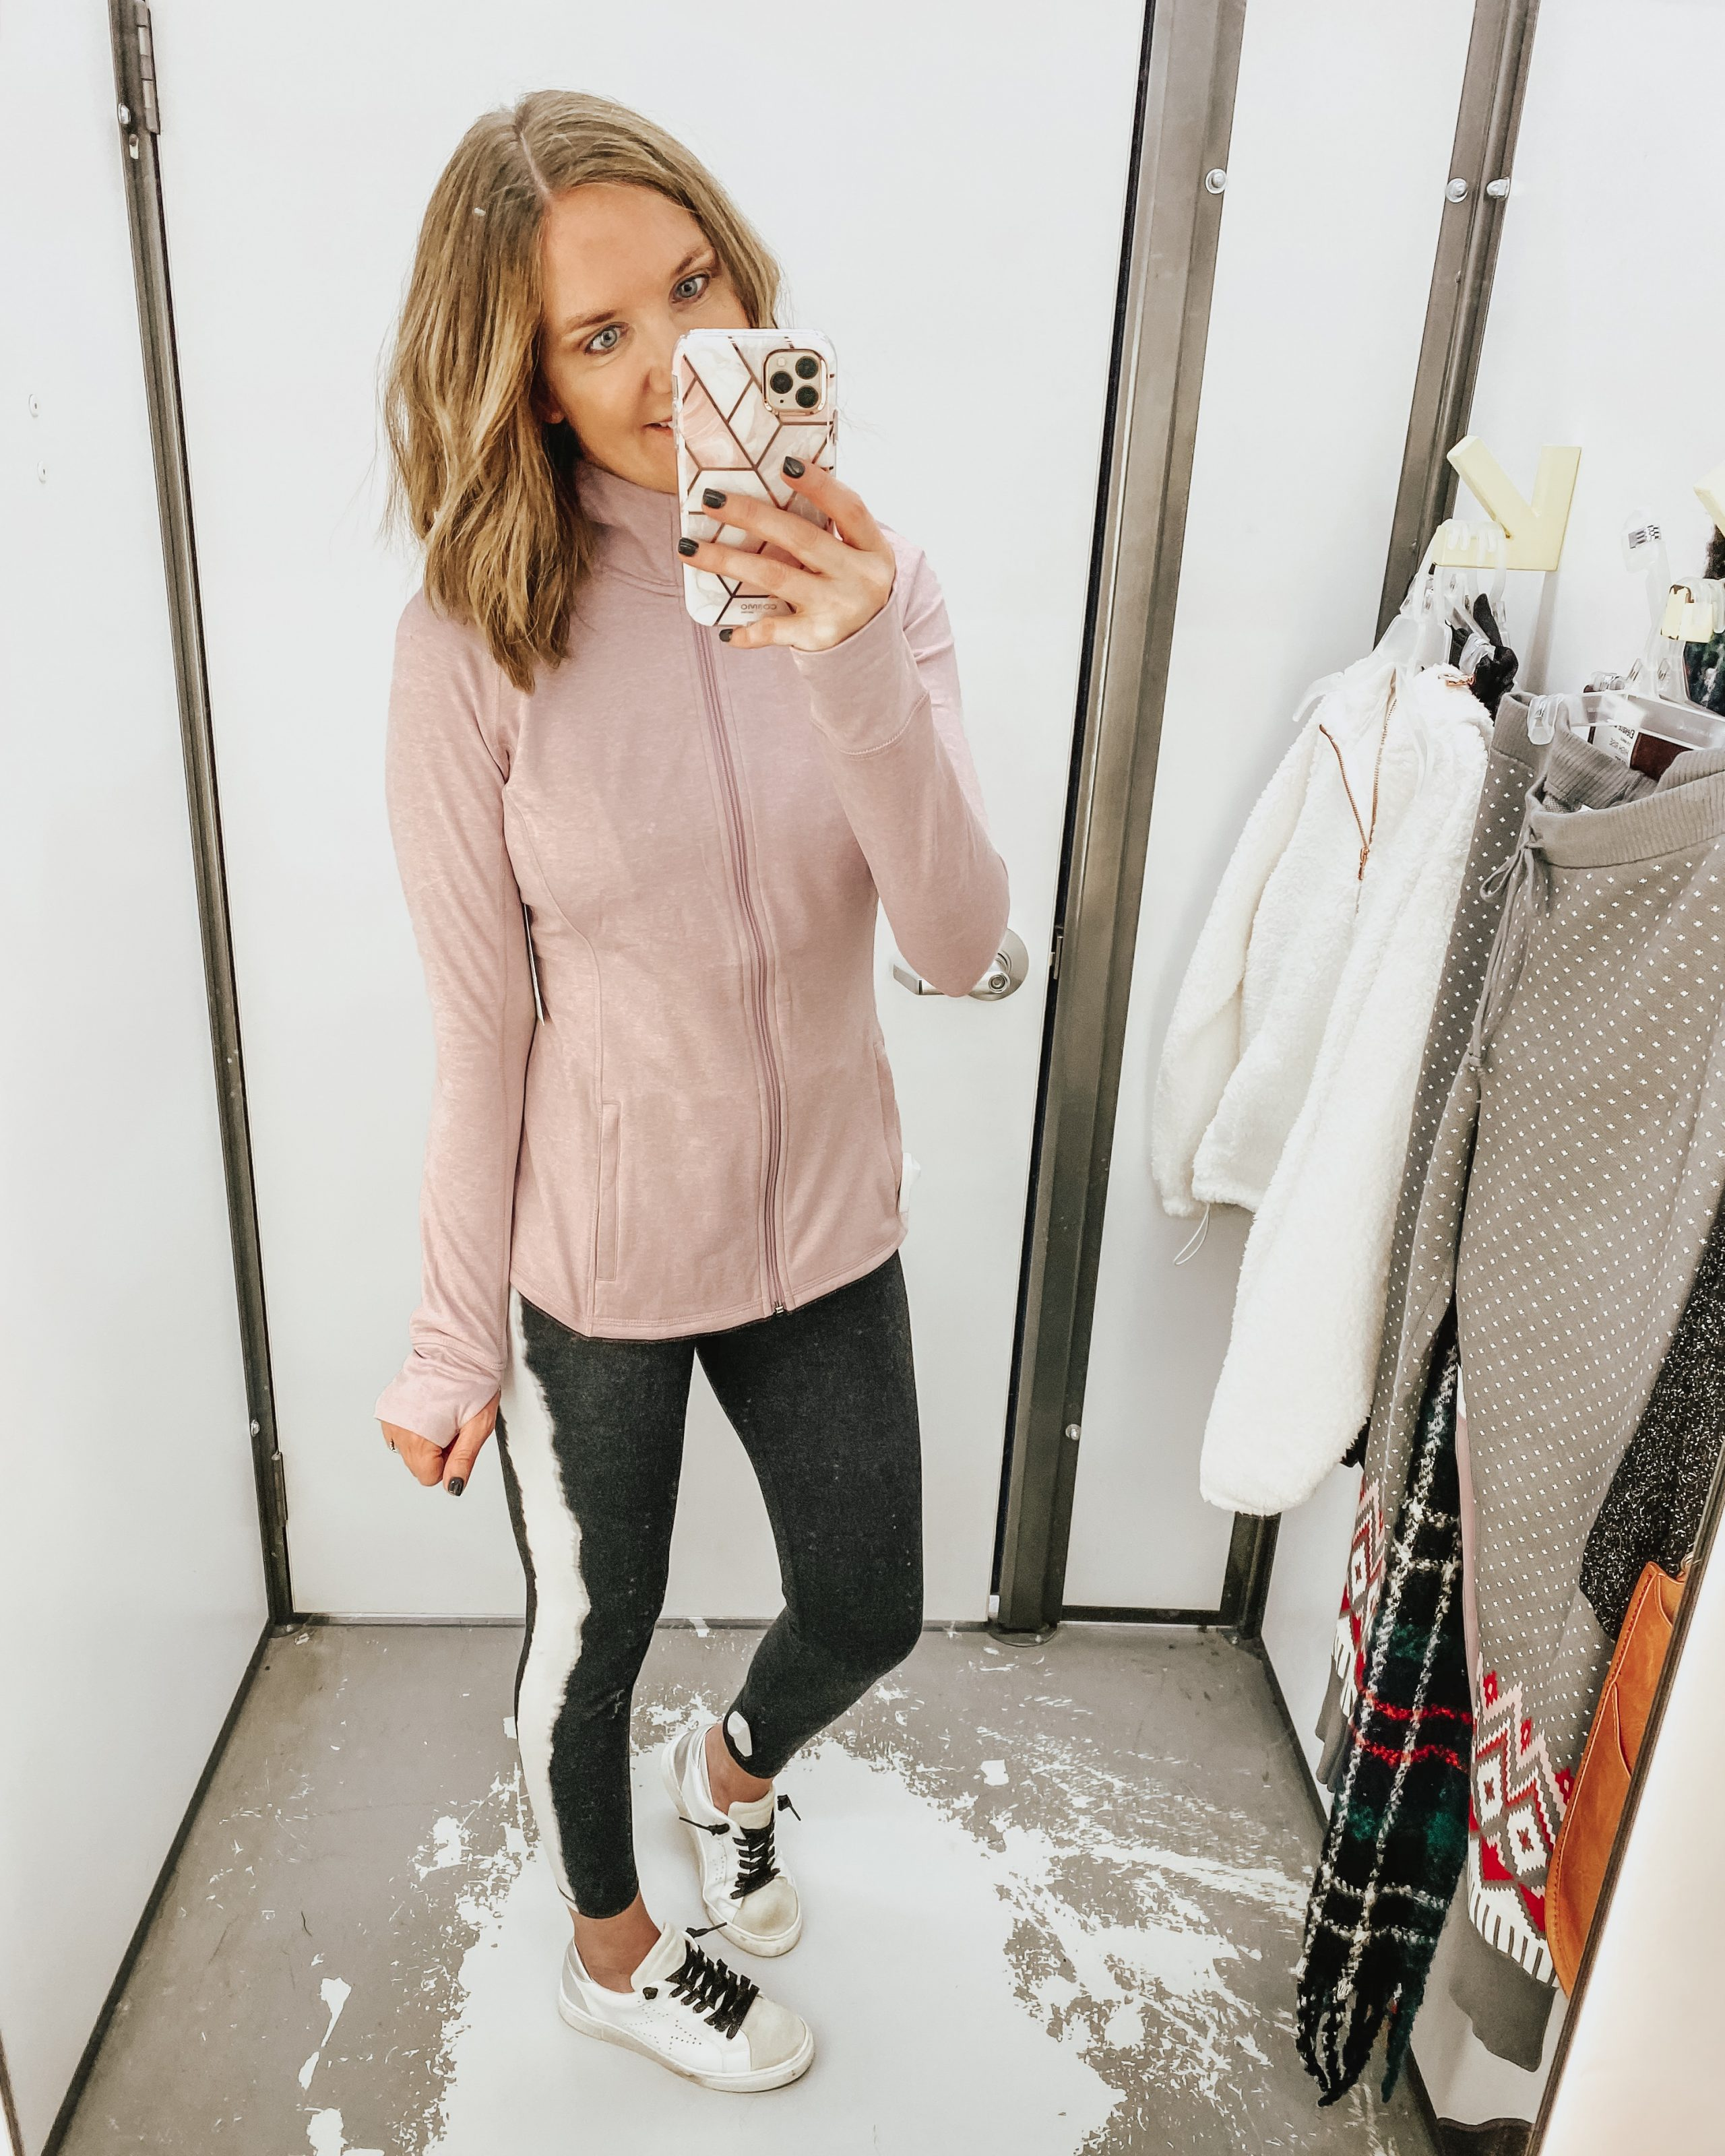 Old Navy winter fashion, holiday outfits, winter outfits, holiday gift ideas